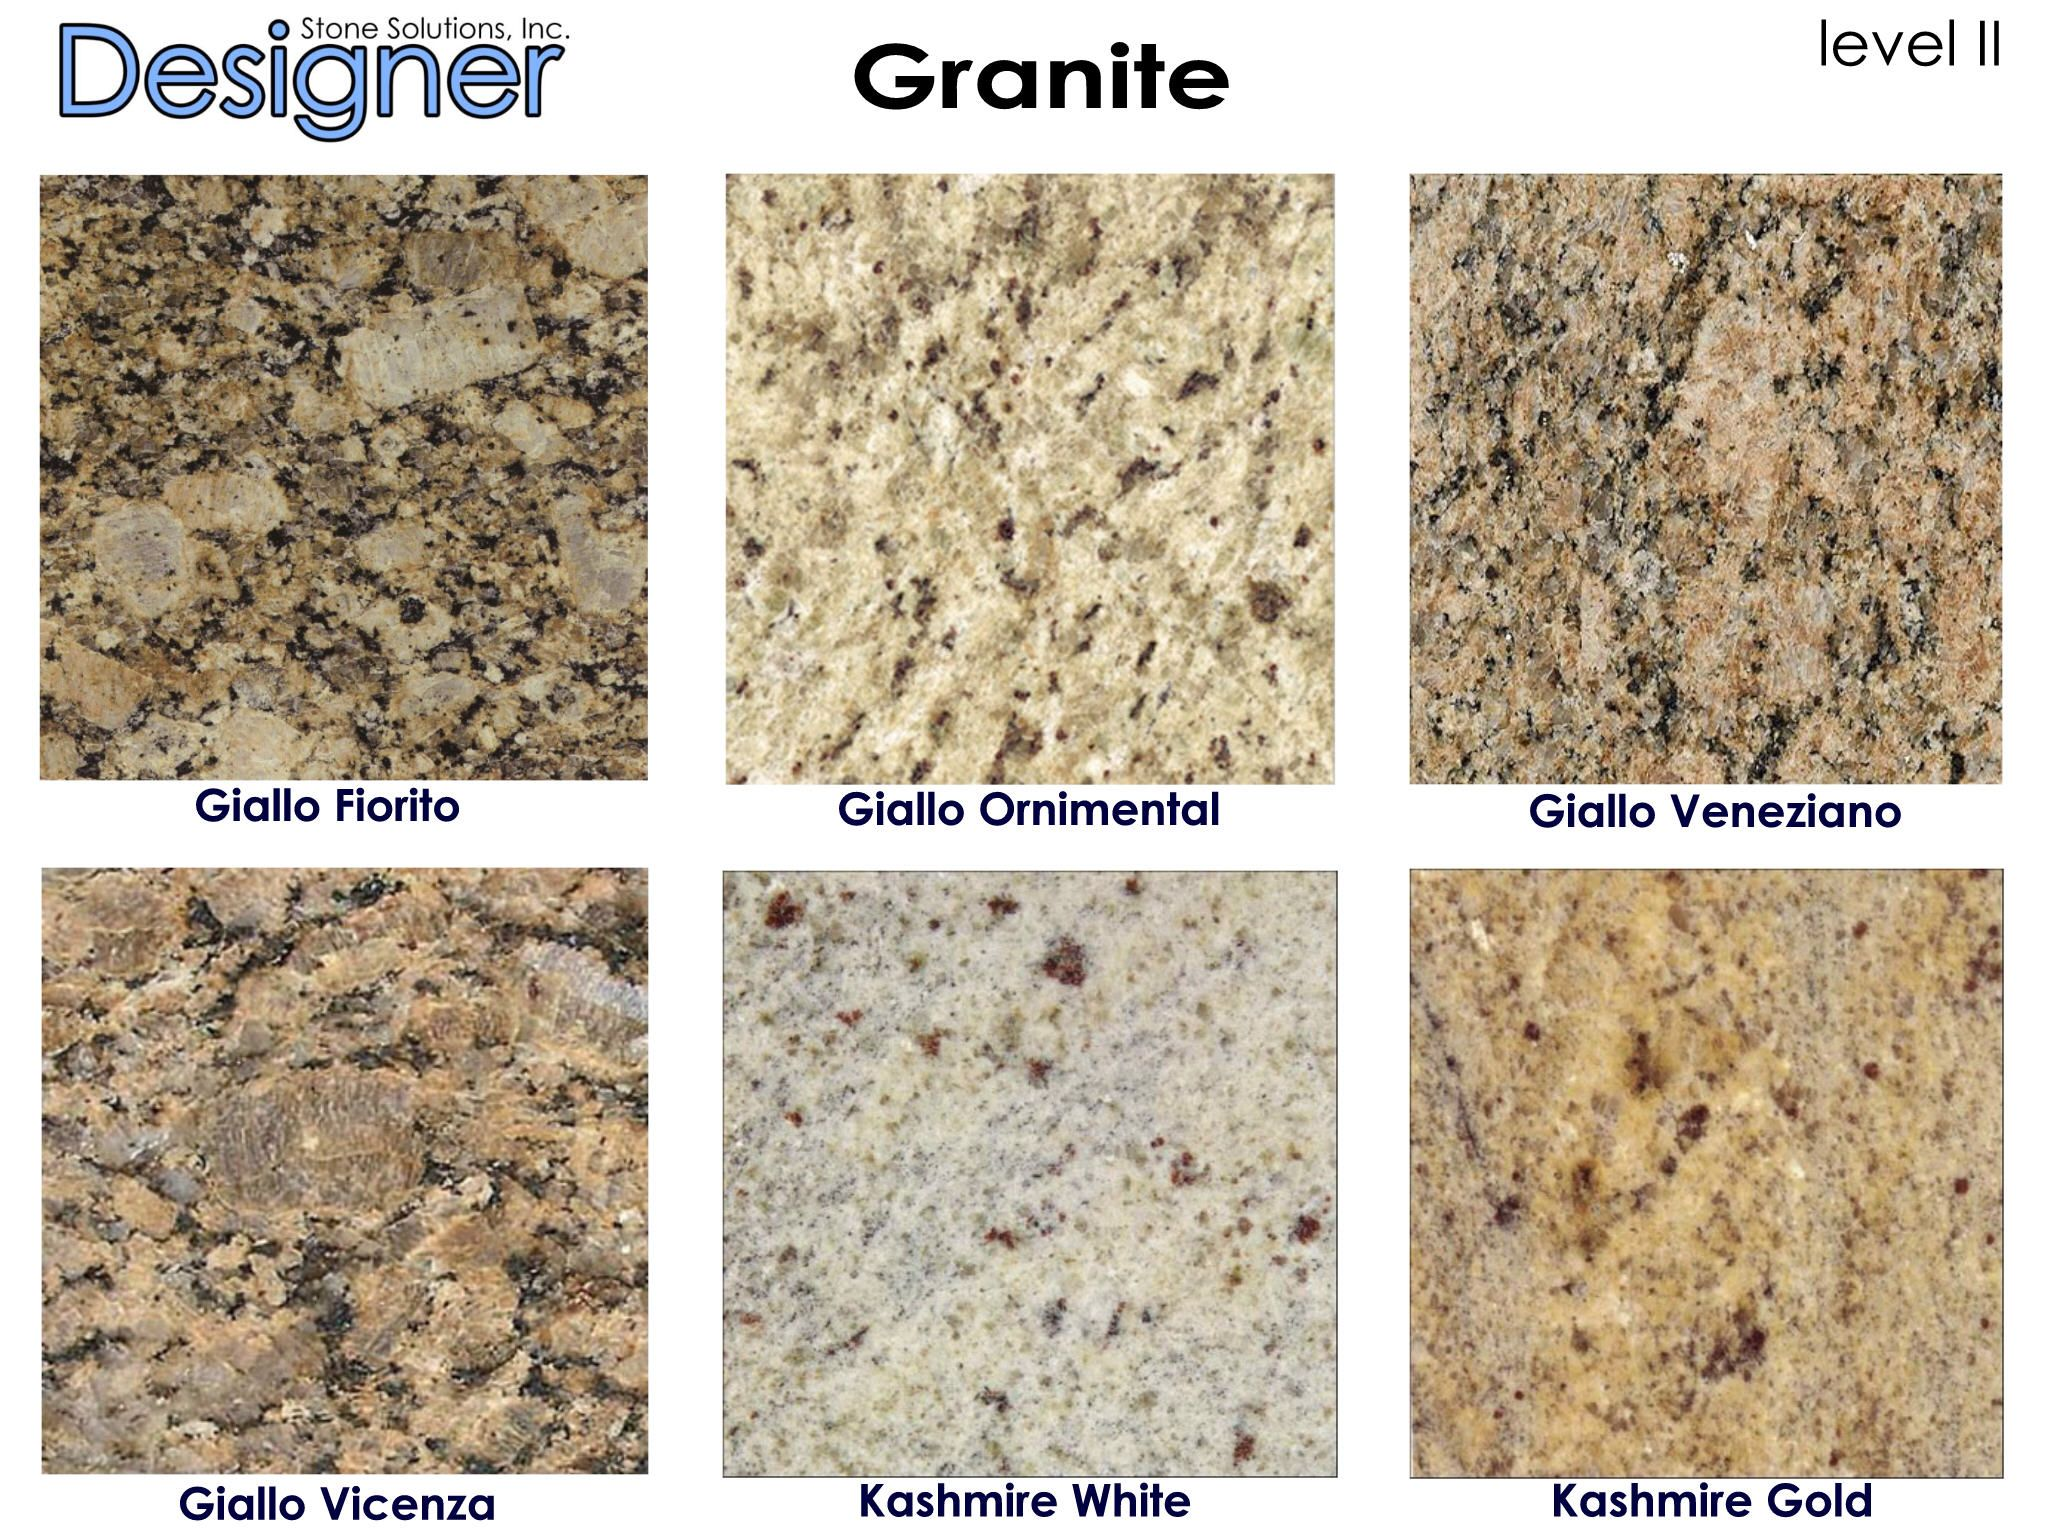 What Color Is Granite : Granite colors dream home pinterest